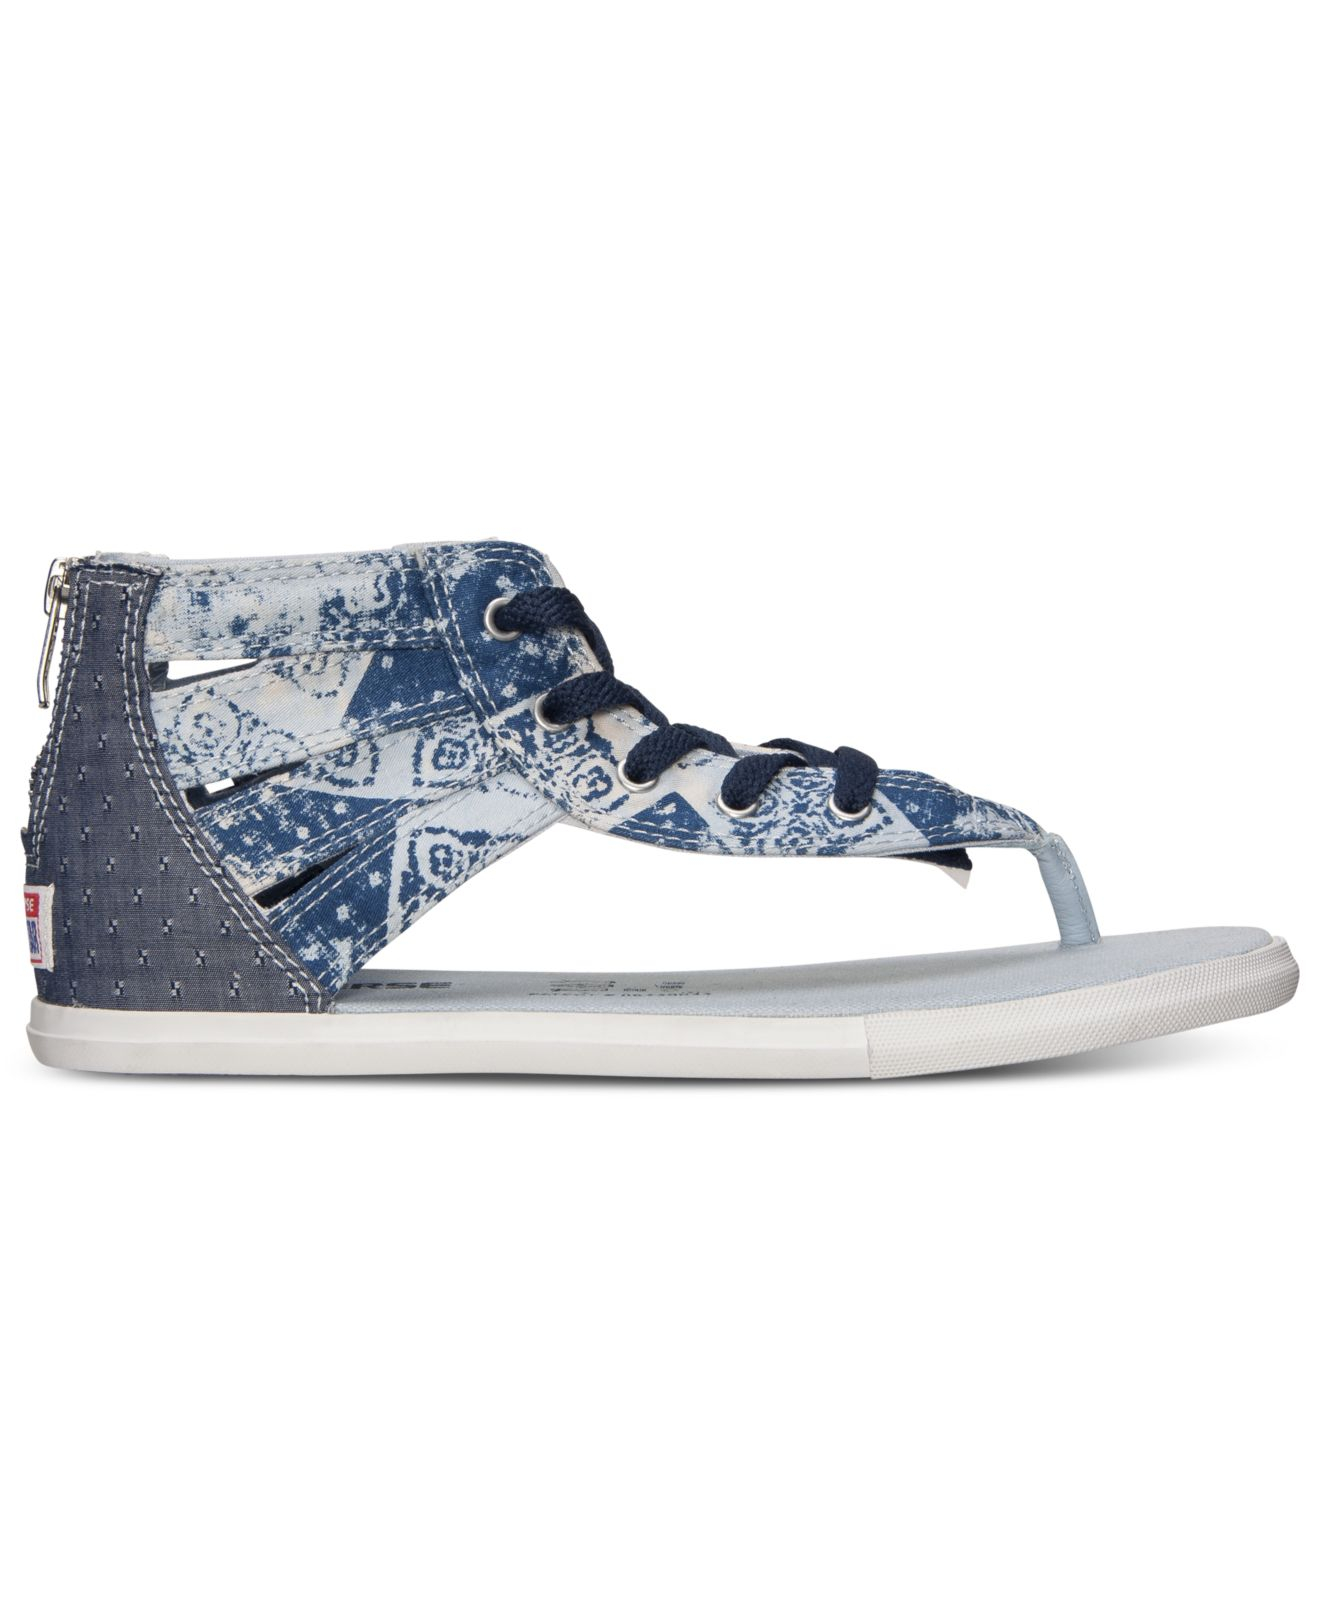 c74d06a7c3342f ... best price lyst converse womens chuck taylor gladiator thong sandals  from 70fee aceba